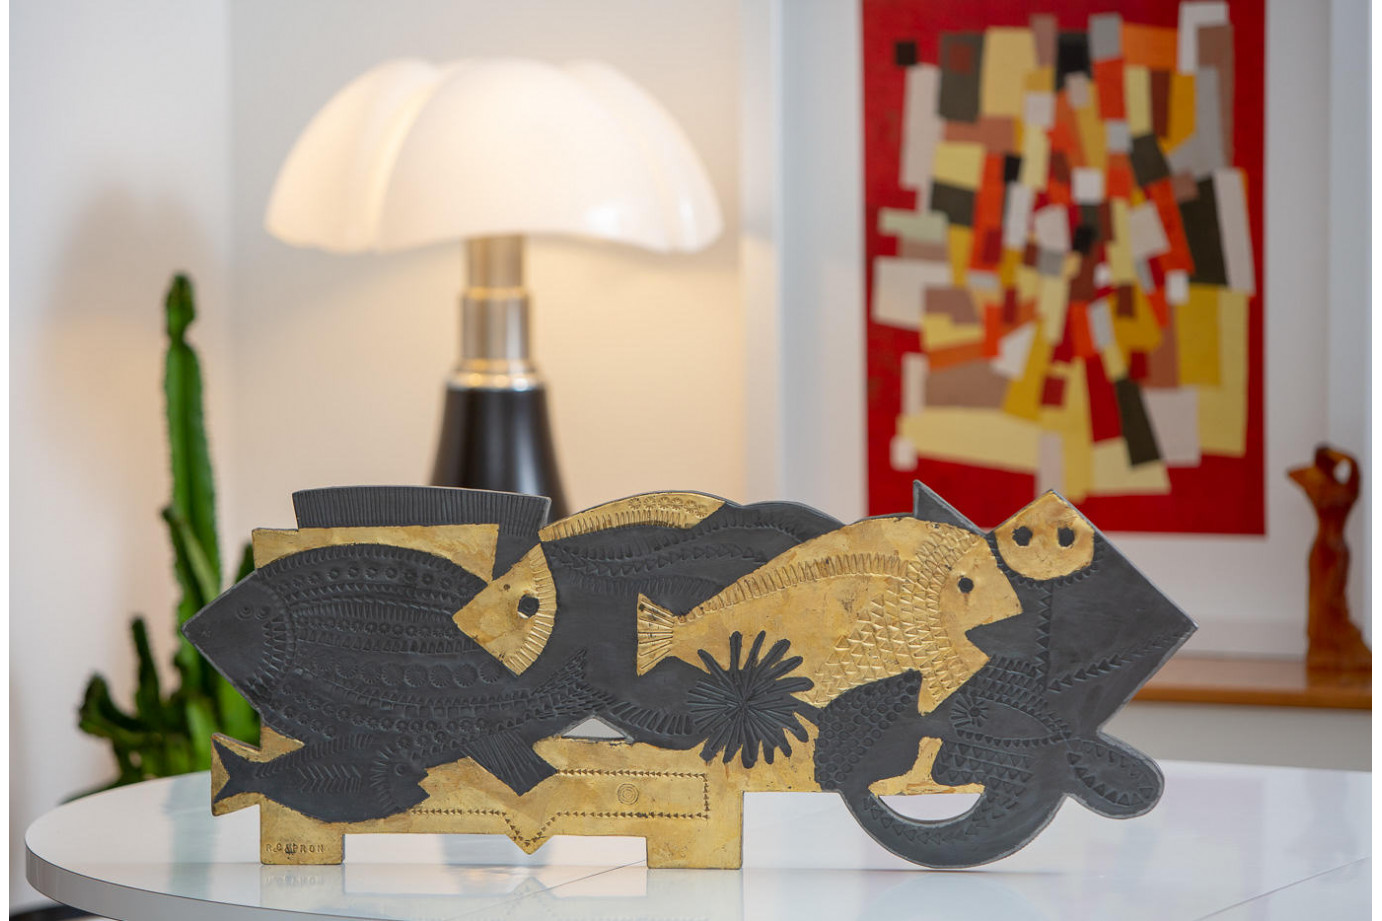 Roger CAPRON (1922-2006)  - Fish. Shiny lead partially punched with a veneer.